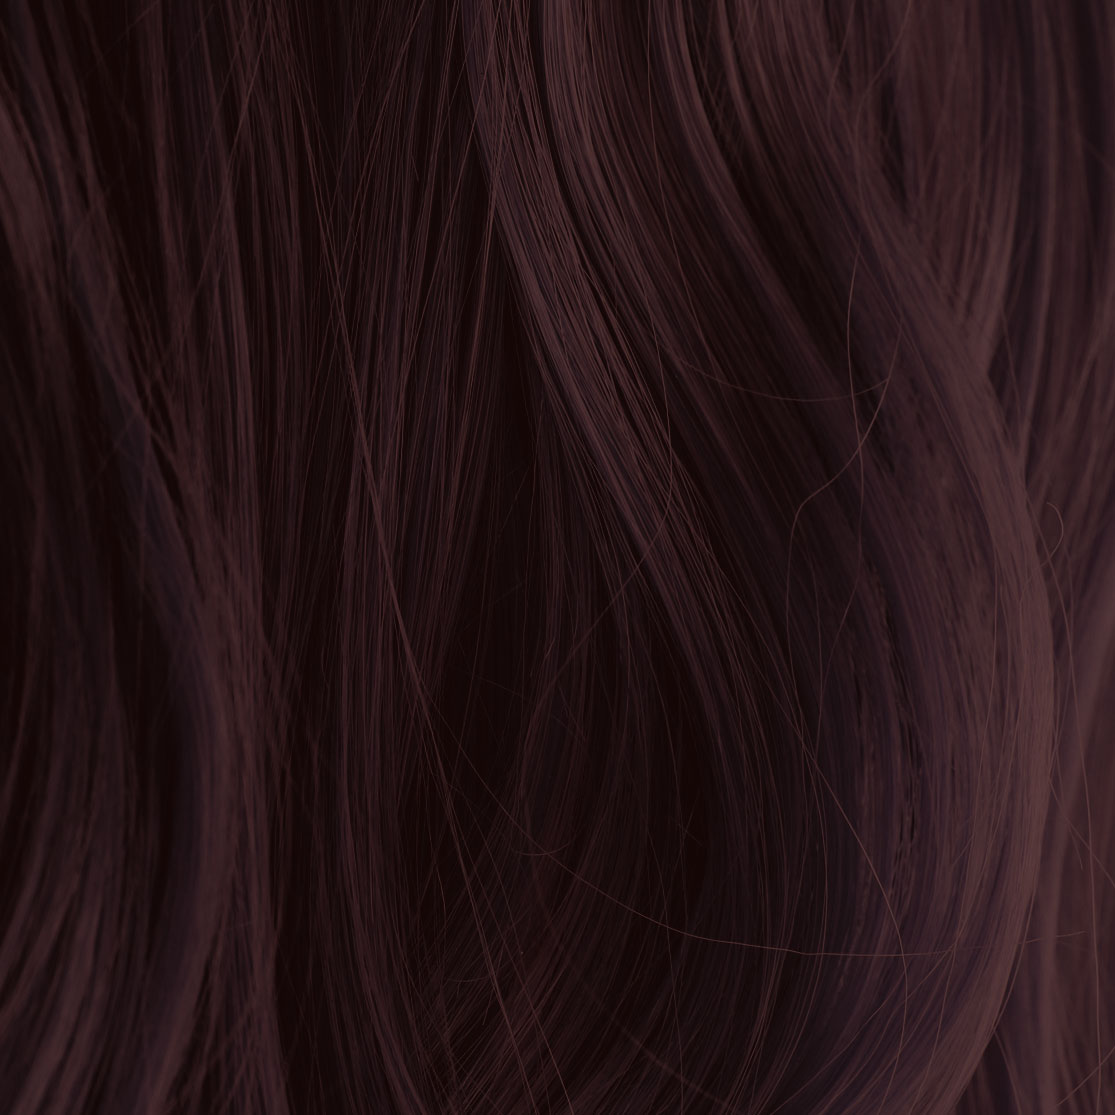 Henna mahogany hair color